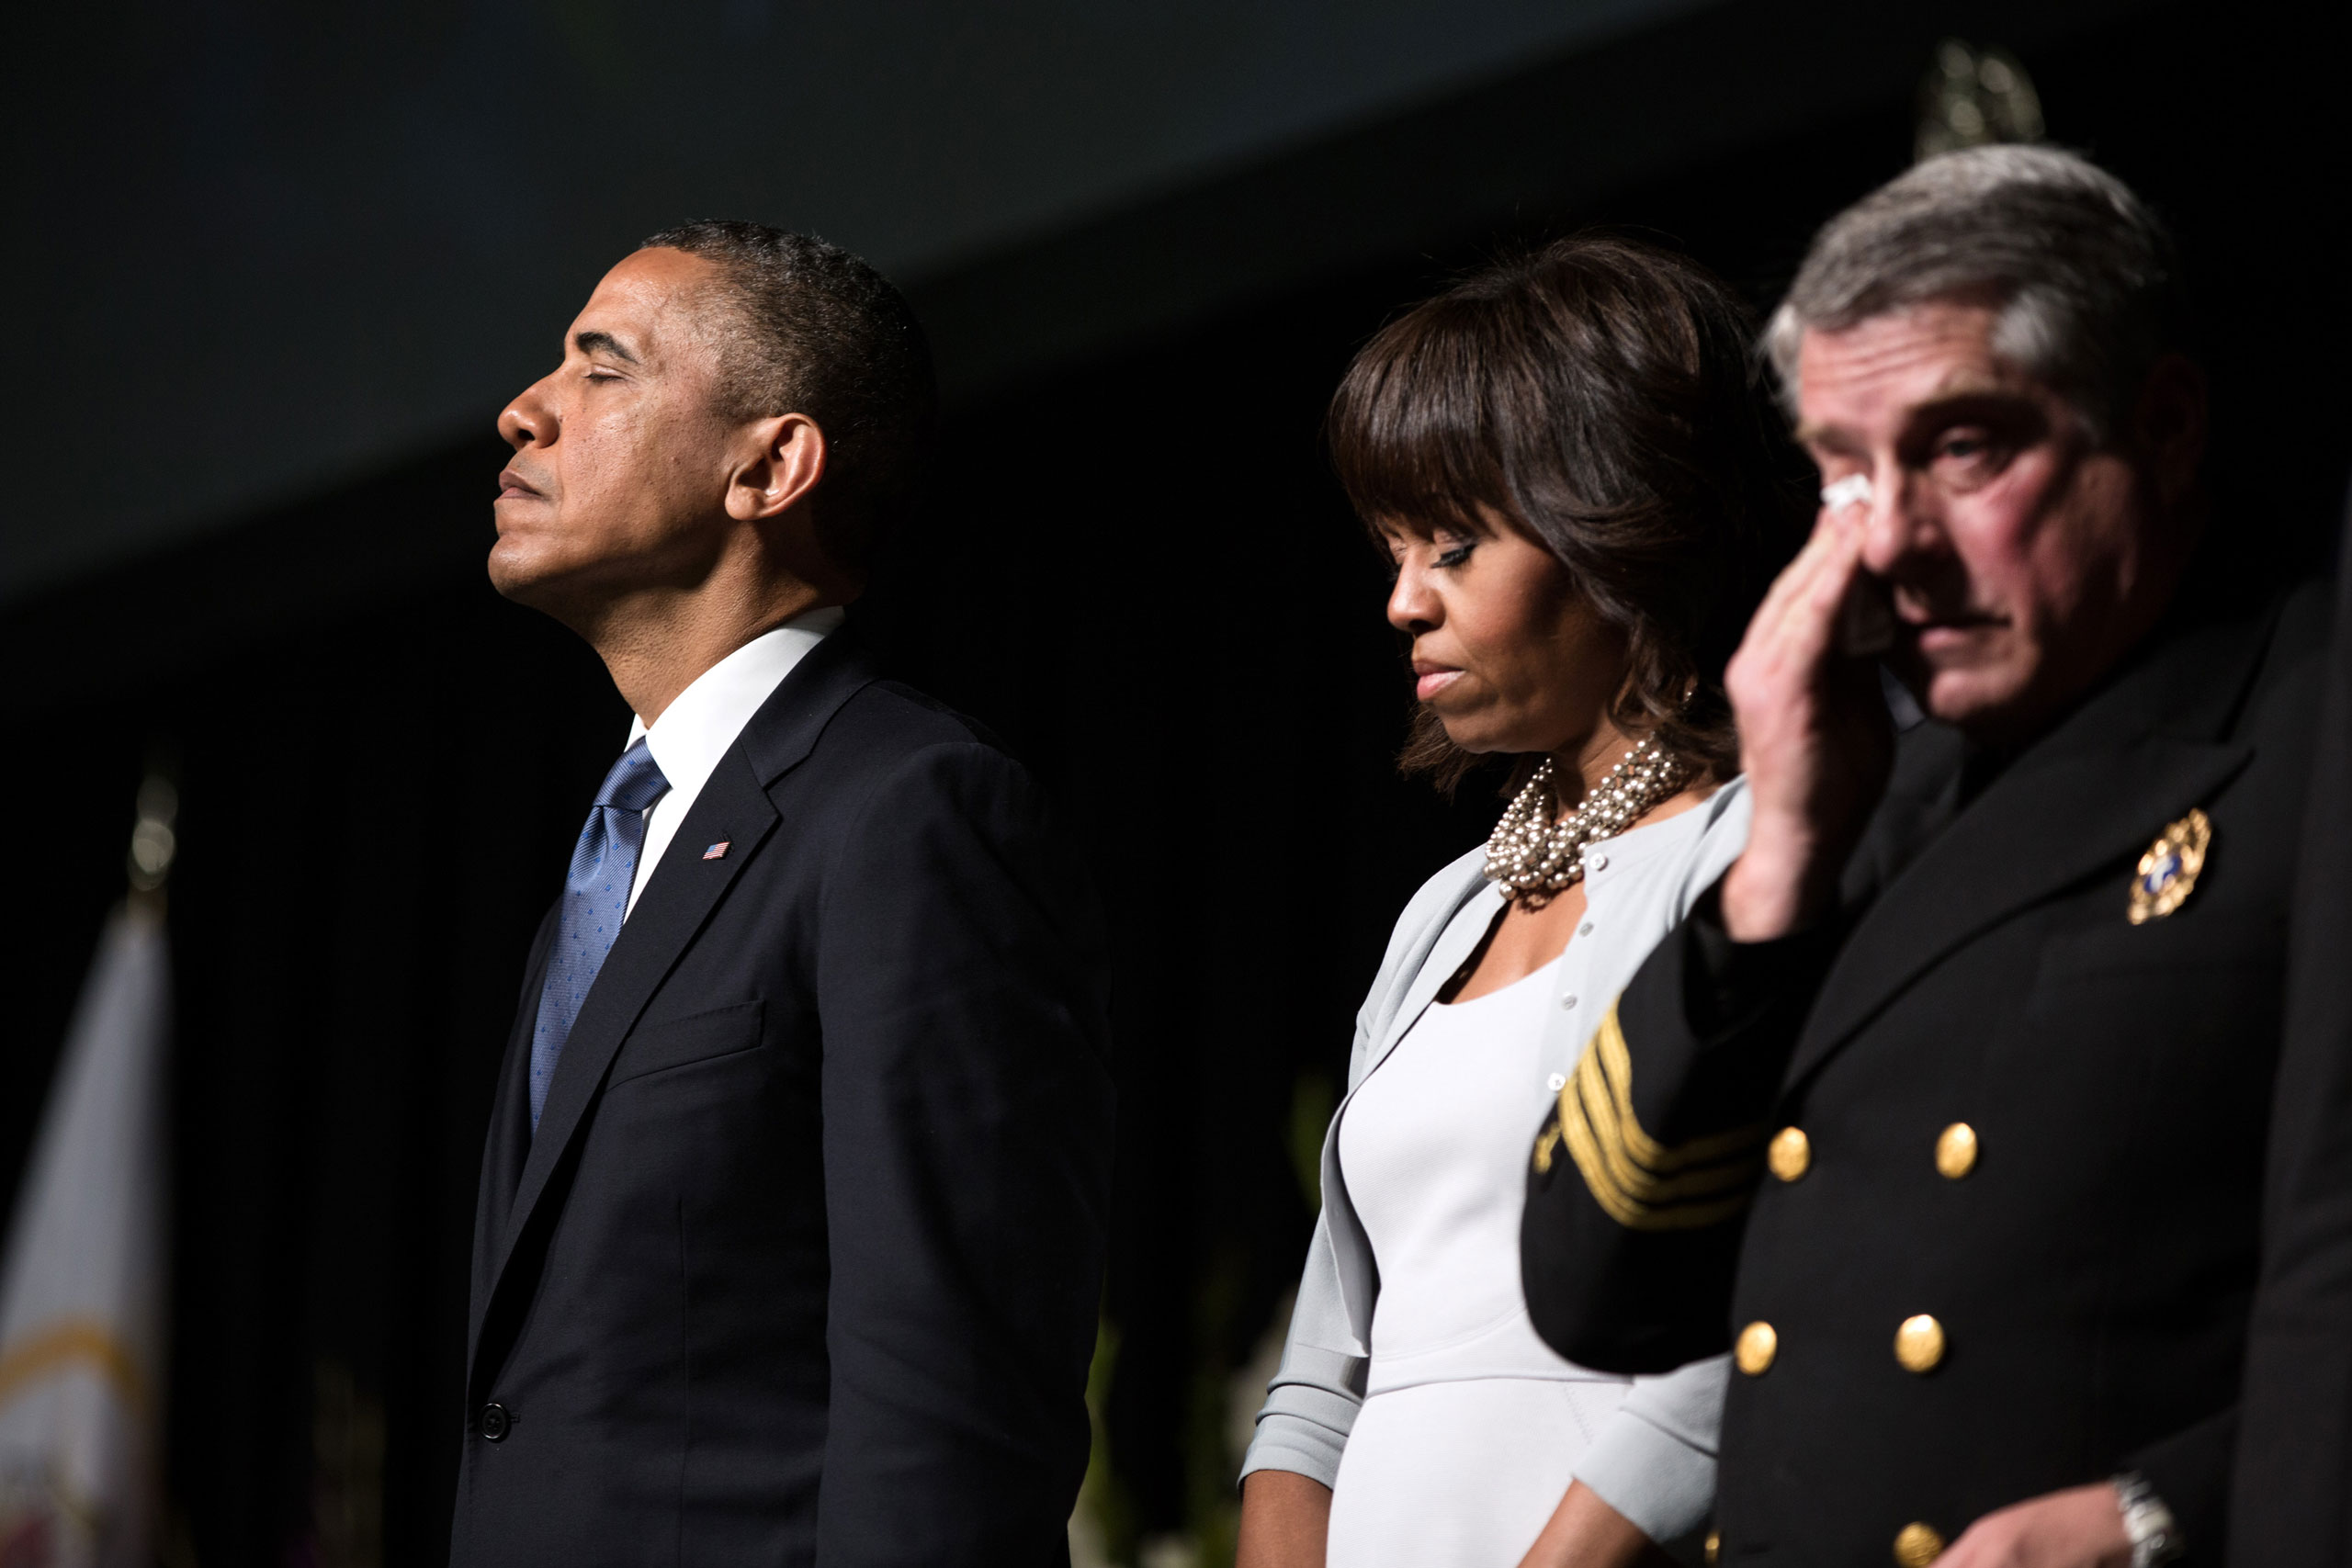 President Barack Obama and First Lady Michelle Obama pause during a memorial service for the victims of the fertilizer plant explosion in West, Texas, at Baylor University in Waco, Texas, April 25, 2013. Fire Chaplain Jimmy Duncan stands with the President and Mrs. Obama.